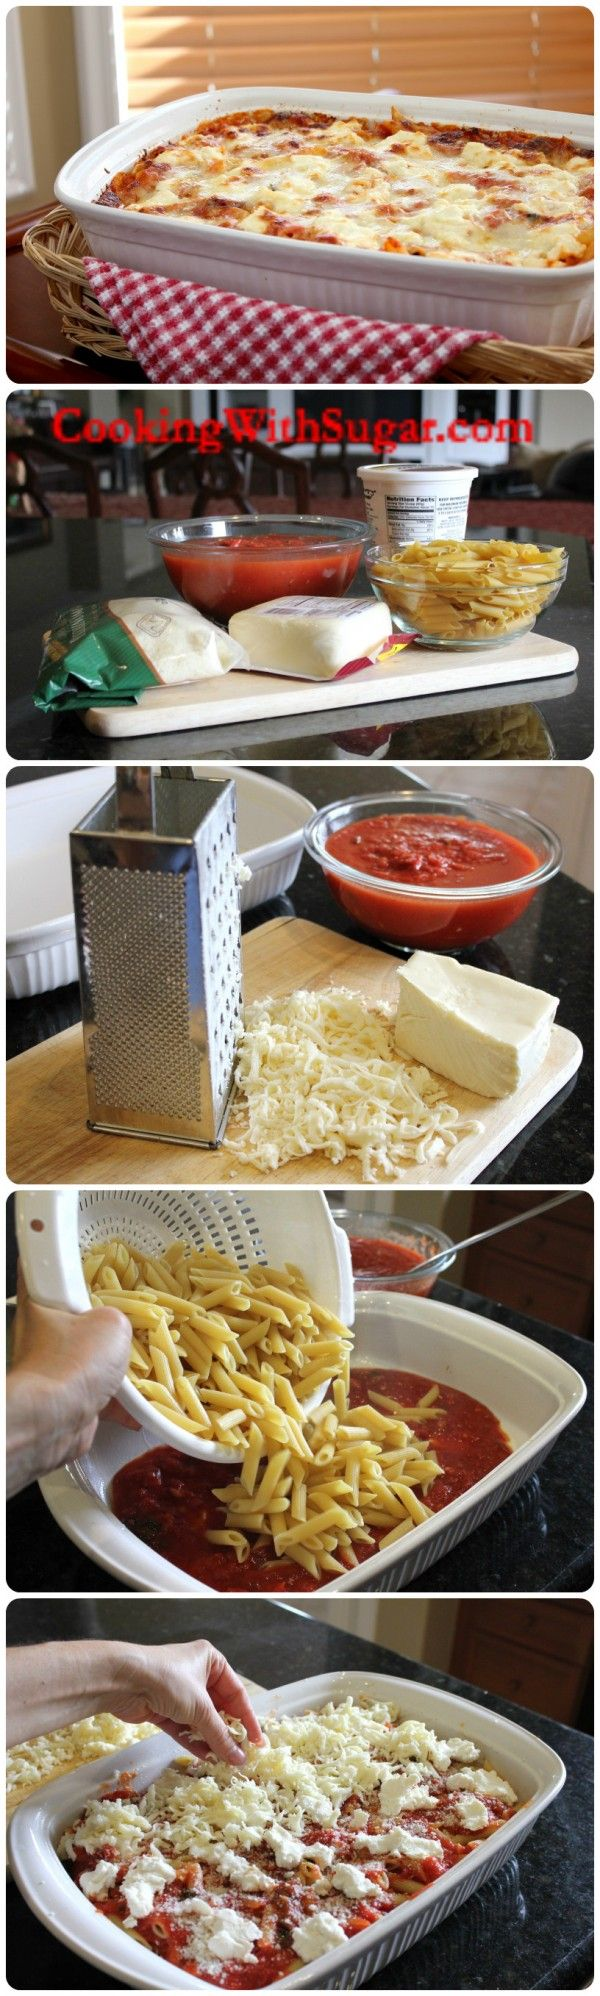 Homemade Italian Pasta Recipes – Baked Ziti- takes MUCH longer to bake than the recipe states, about twice as long total.  Also added Italian spices, garlic salt, and oregano to both marinara layers.